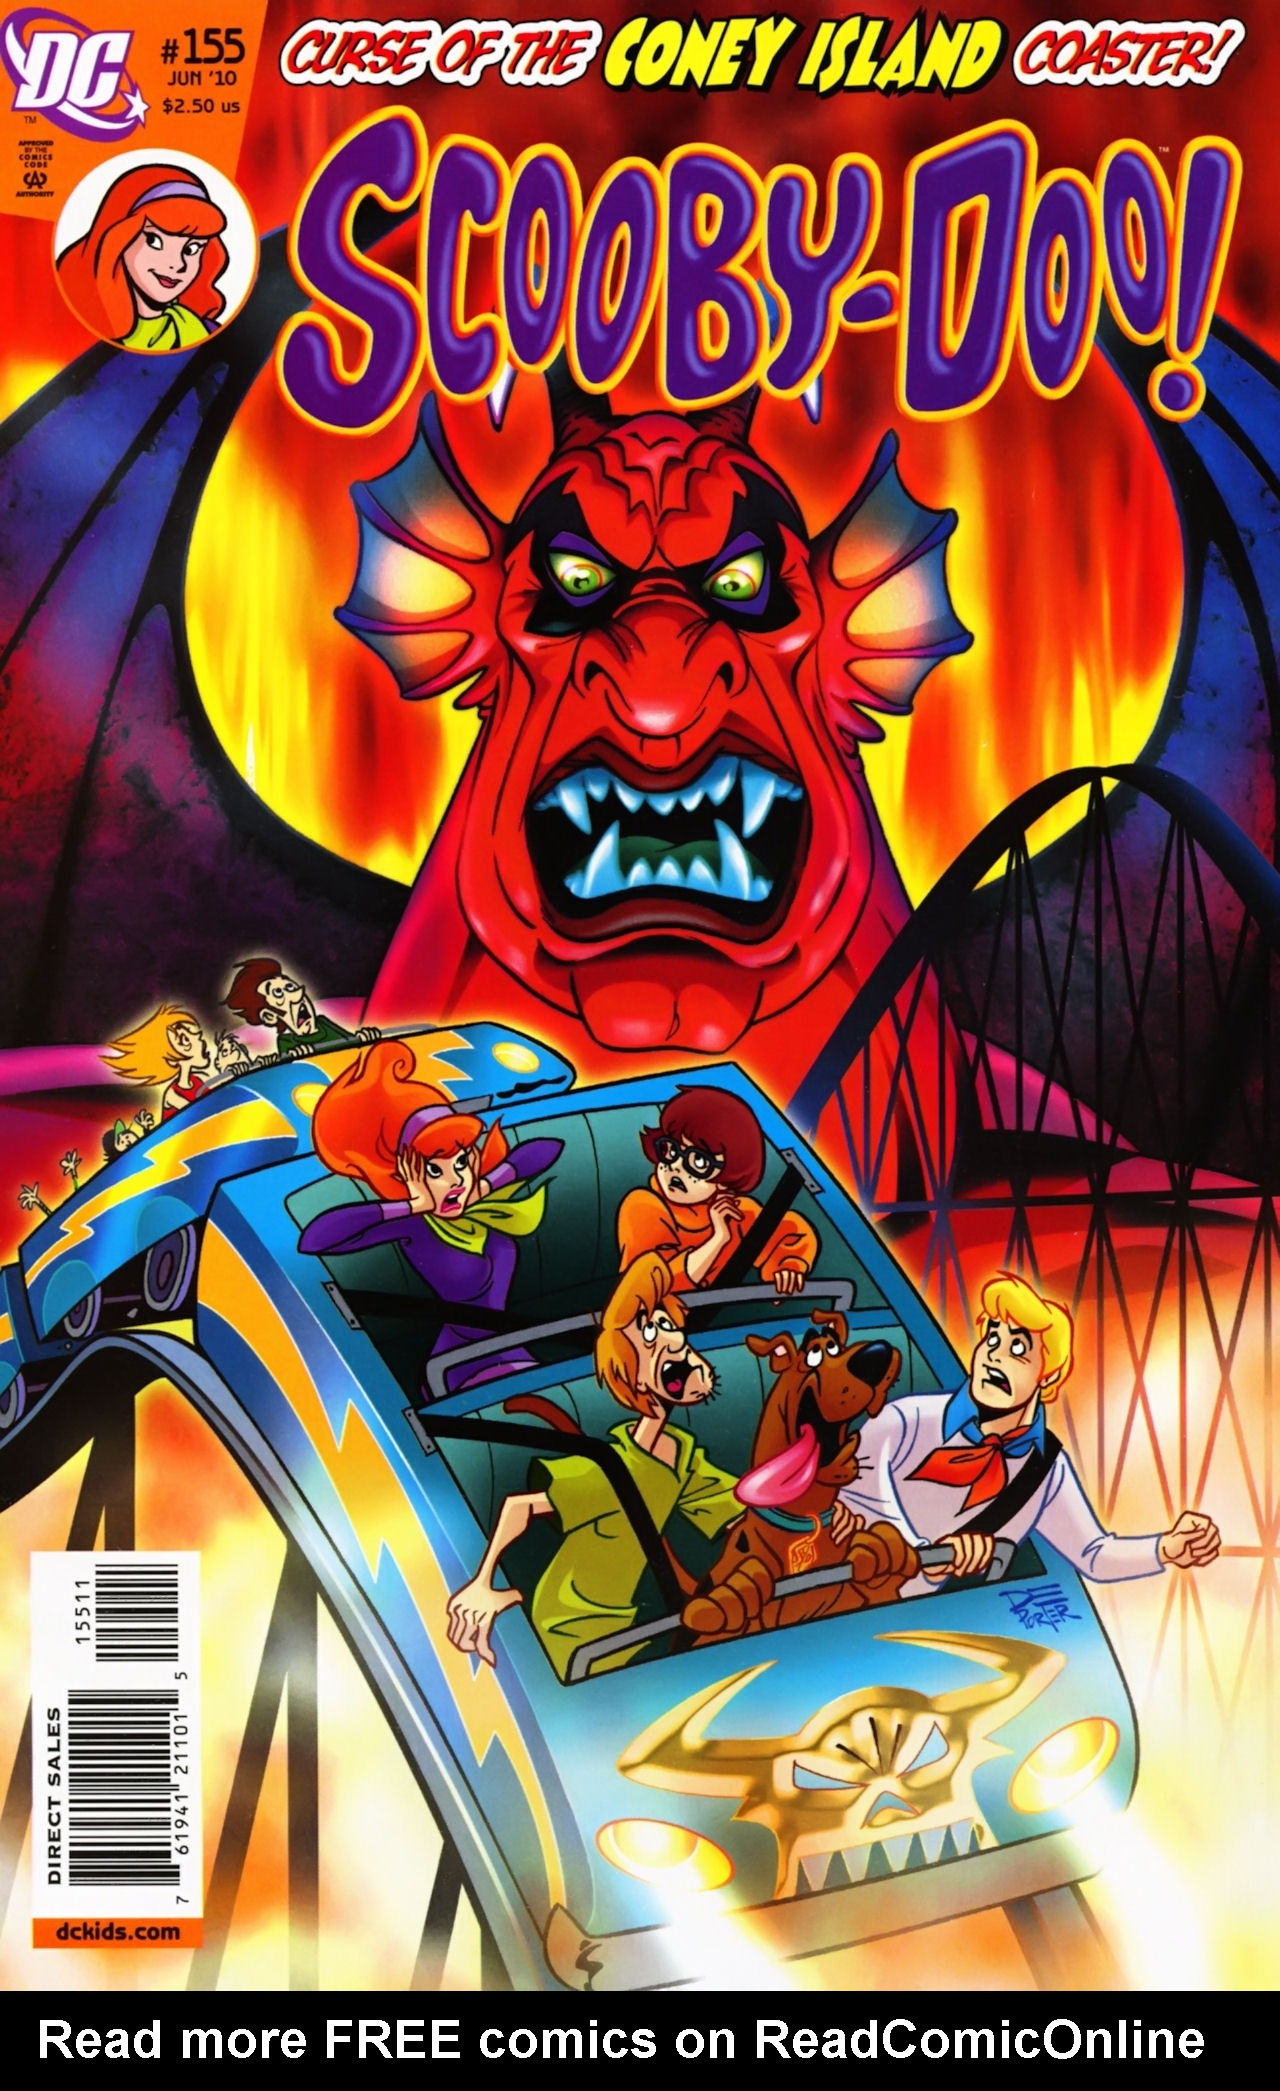 Read online Scooby-Doo (1997) comic -  Issue #155 - 1